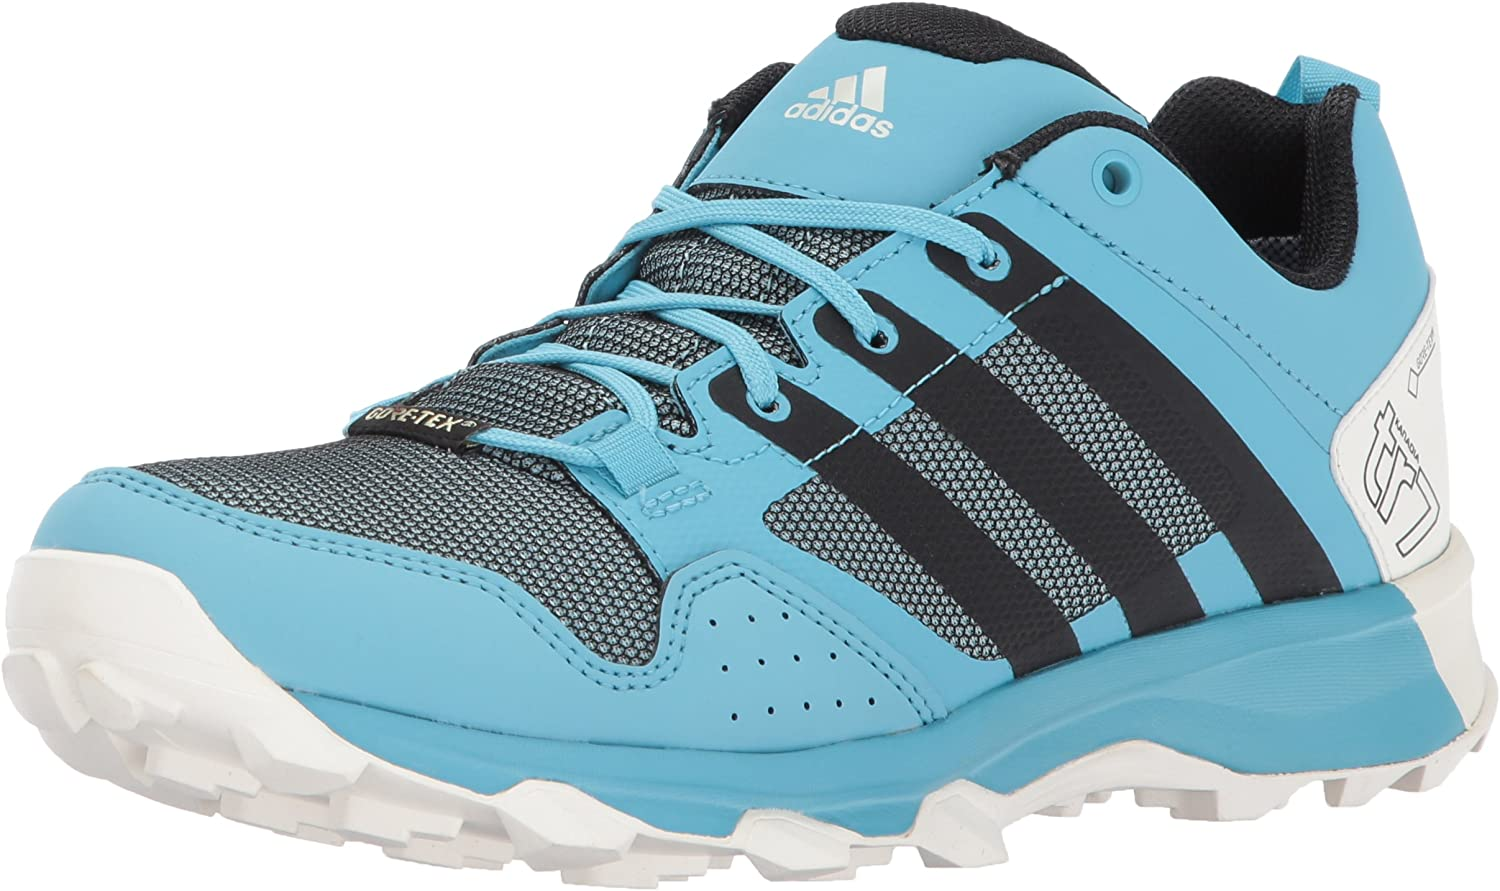 Adidas Outdoor Women's Kanadia 7 GTX W Trail Running shoes, Vapour bluee Black Clear Aqua, 6 M US